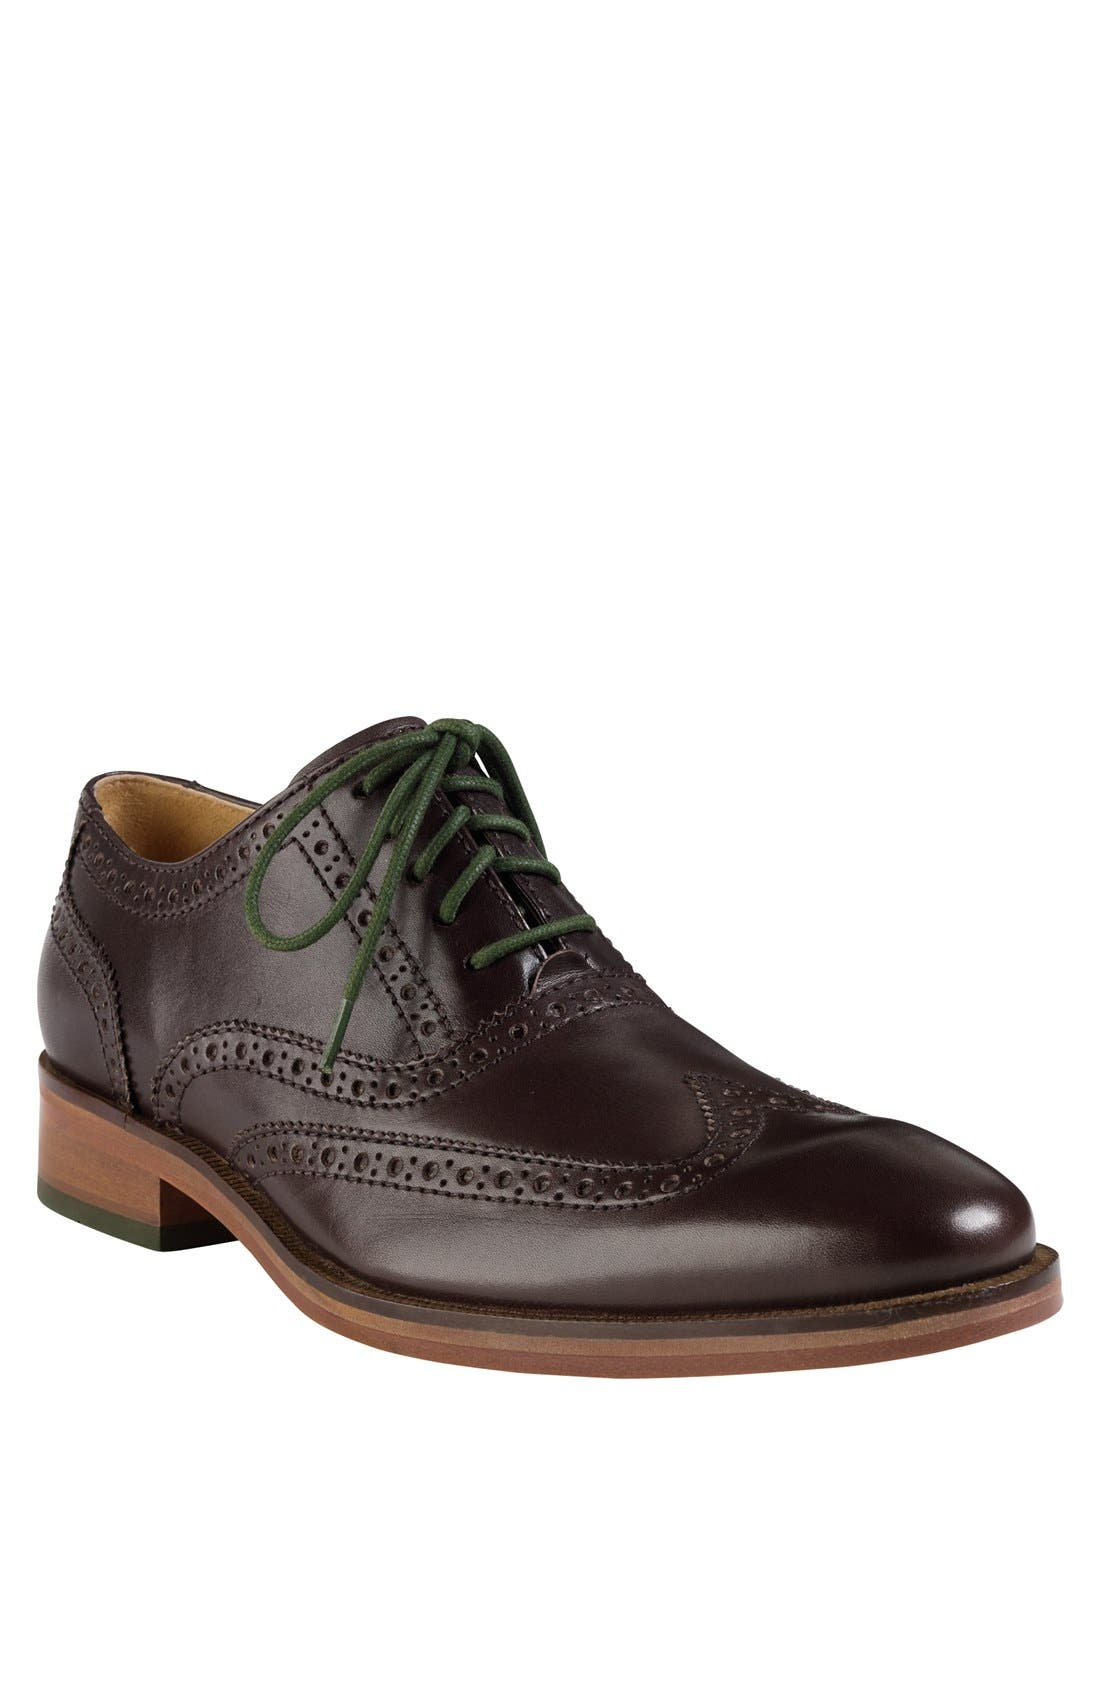 Alternate Image 1 Selected - Cole Haan 'Colton' Wingtip (Men)